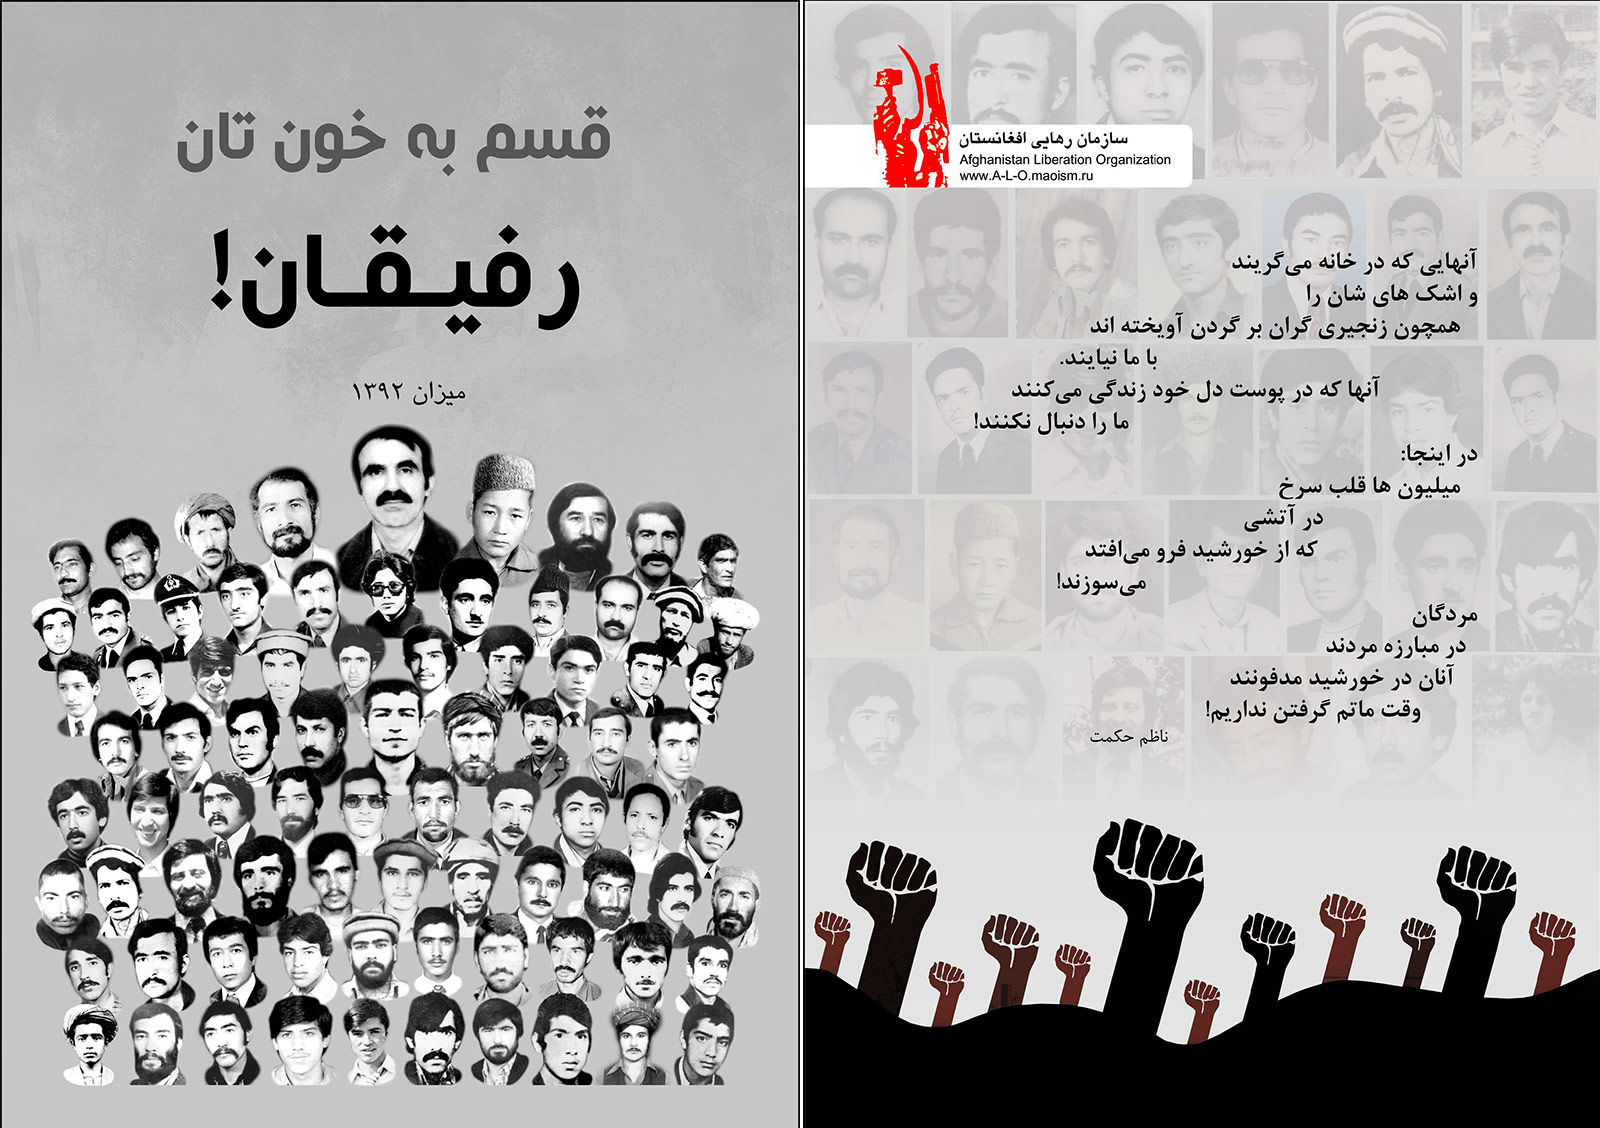 Biographies of ALO martyred comrades in Persian